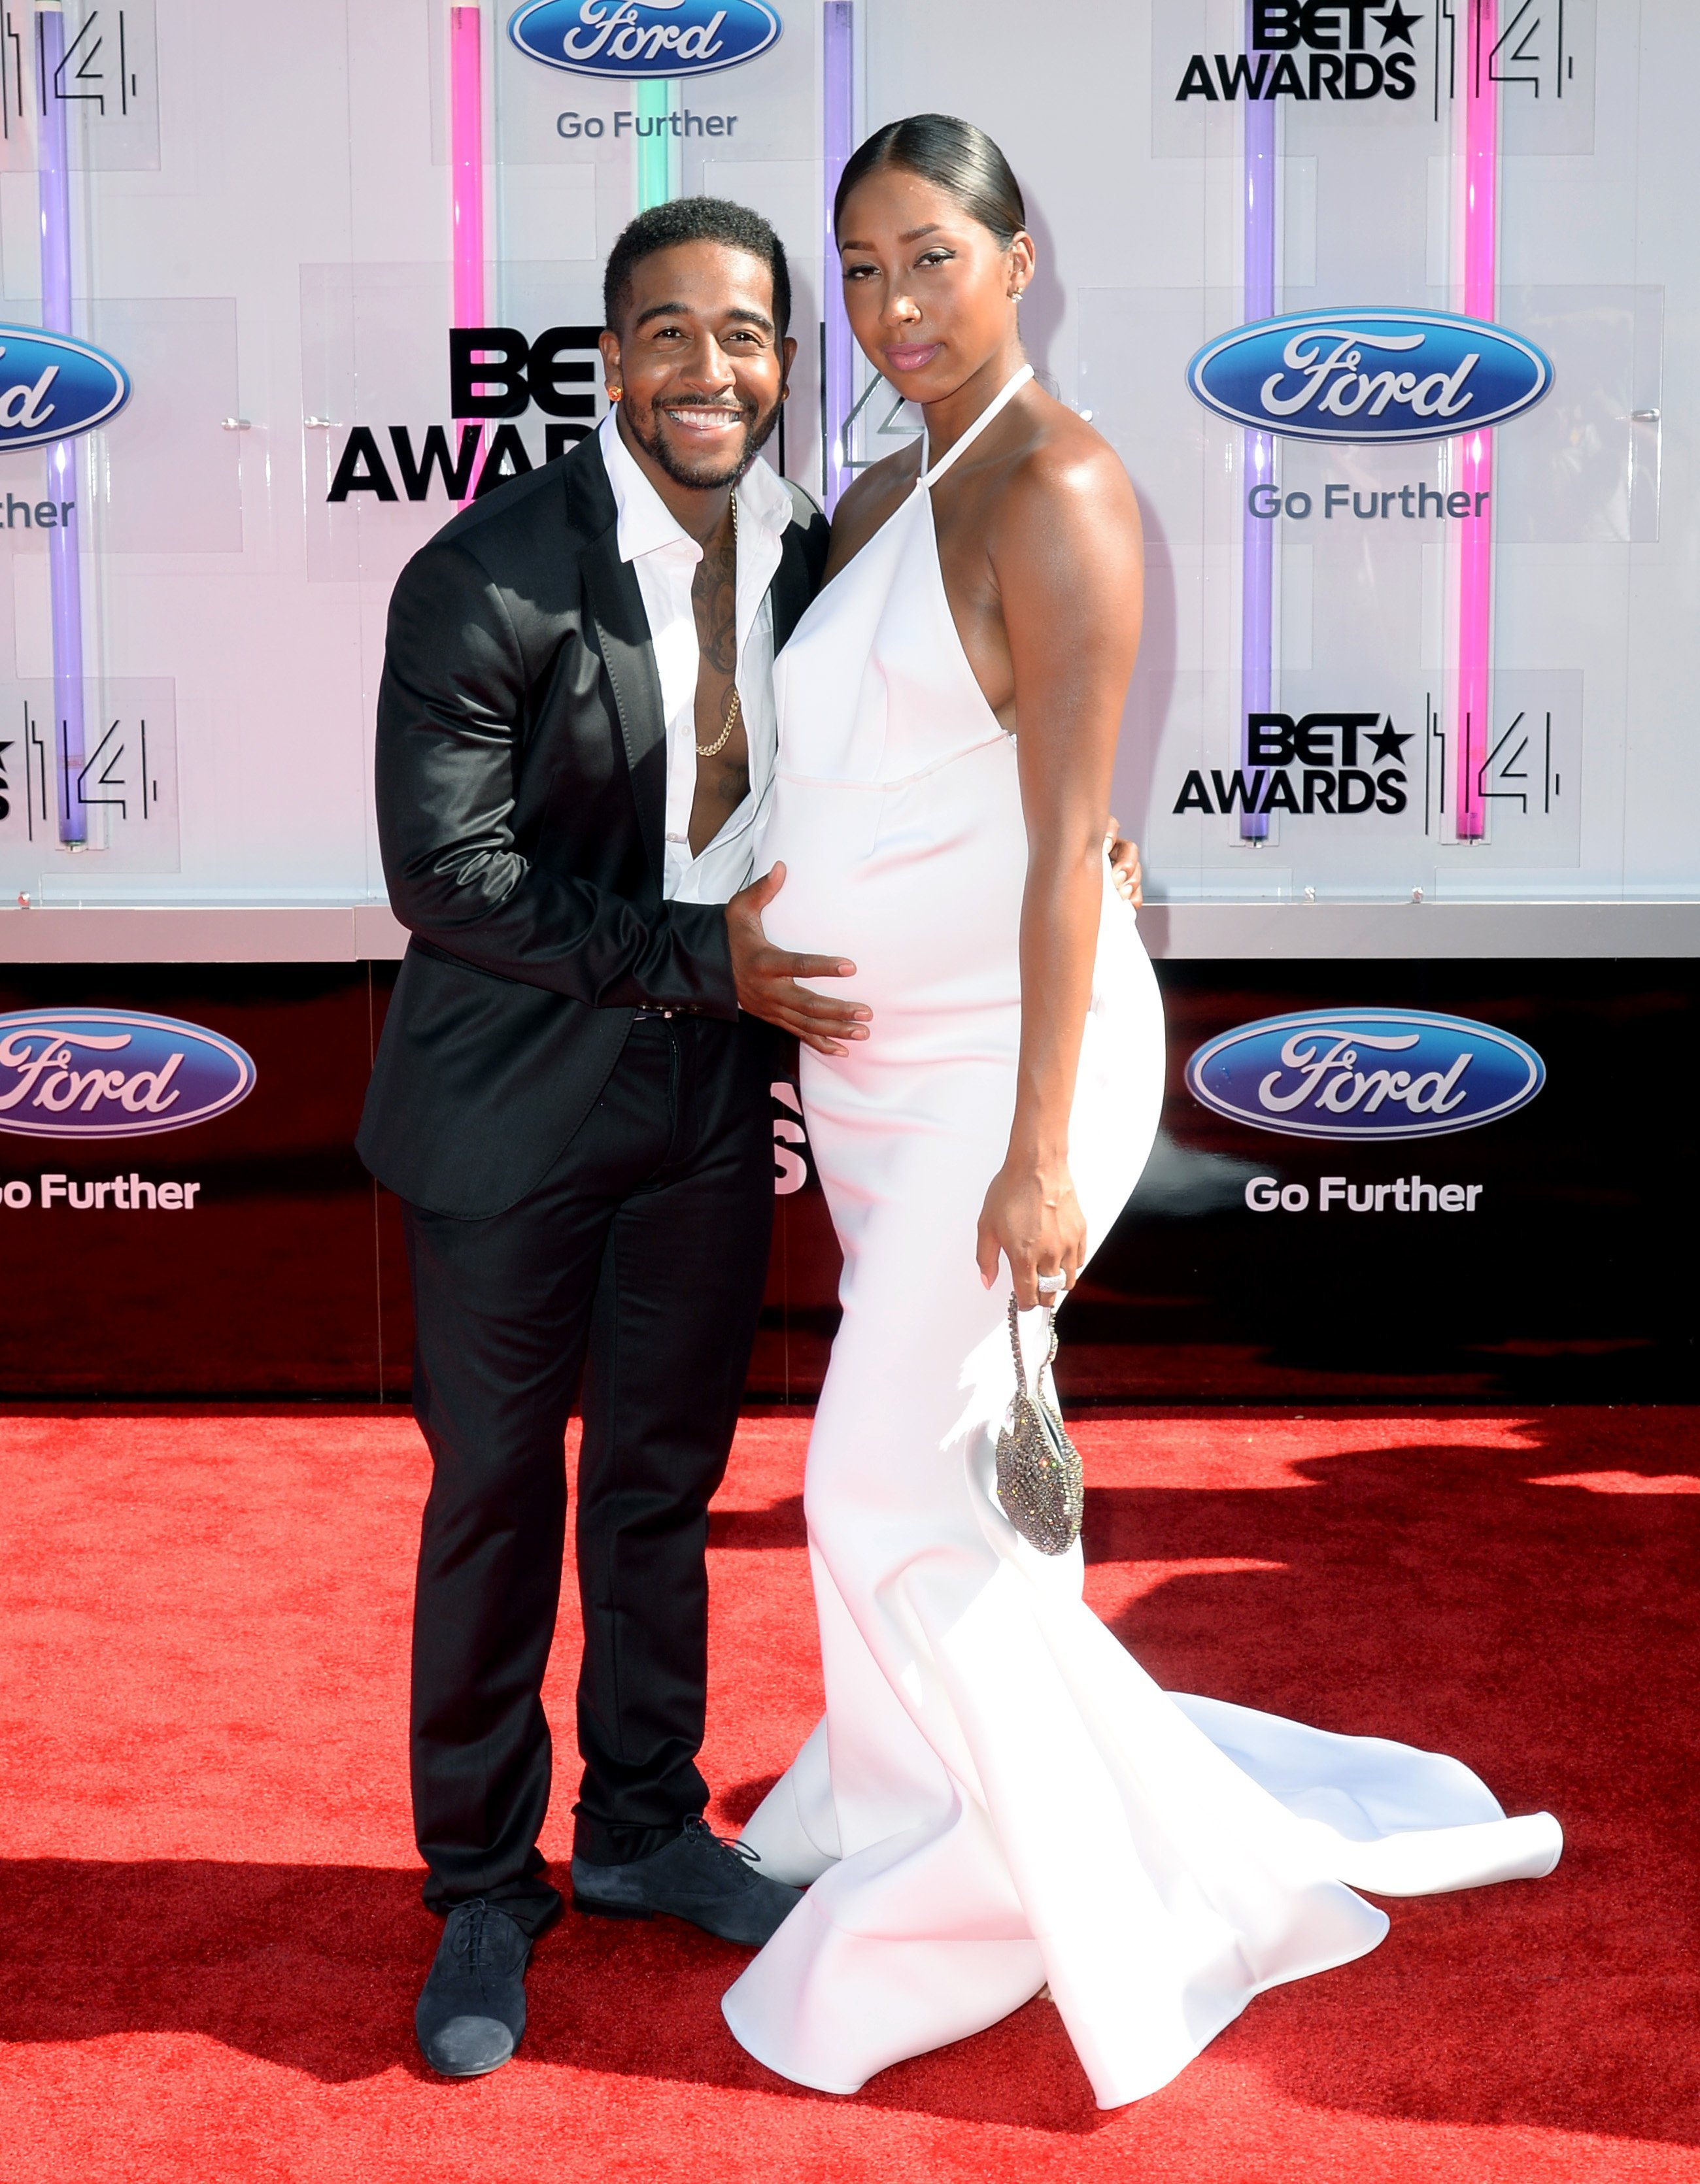 (Happier times) A pregnant Apryl Jones & Omarion at the BET awards in Los Angeles, California on June 29, 2014. |Photo: Getty Images